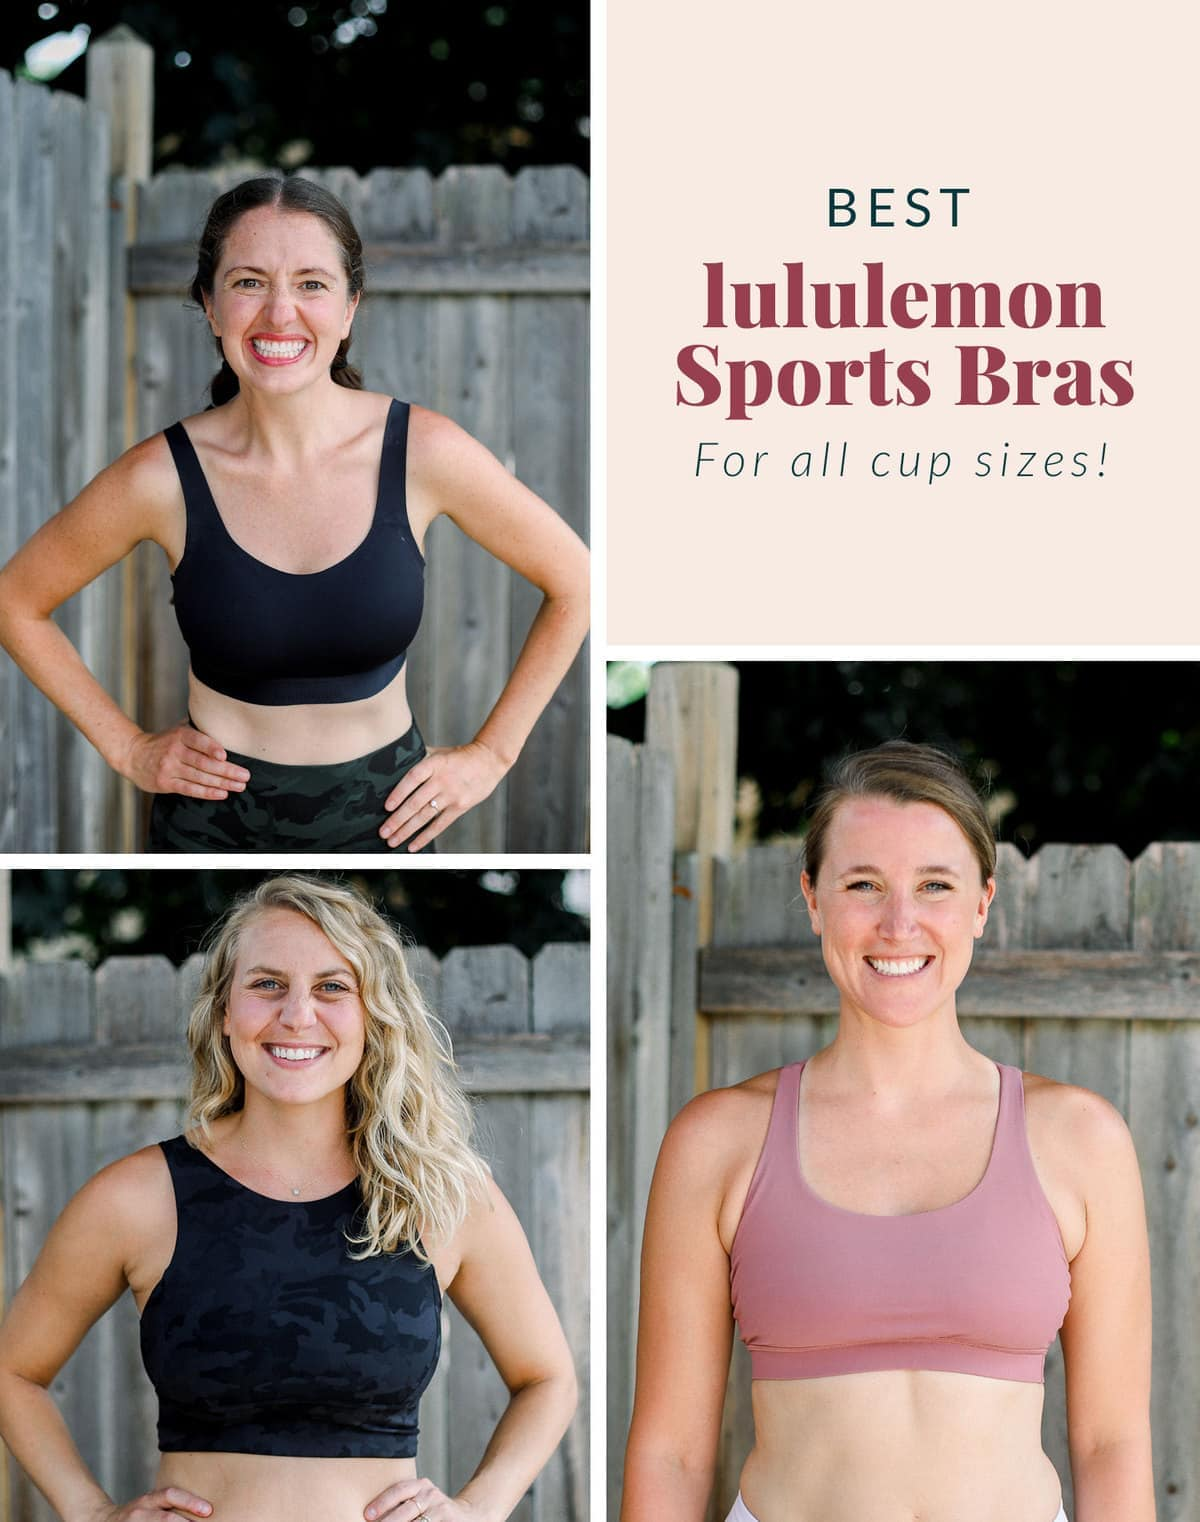 best lululemon sports bras for all cup sizes